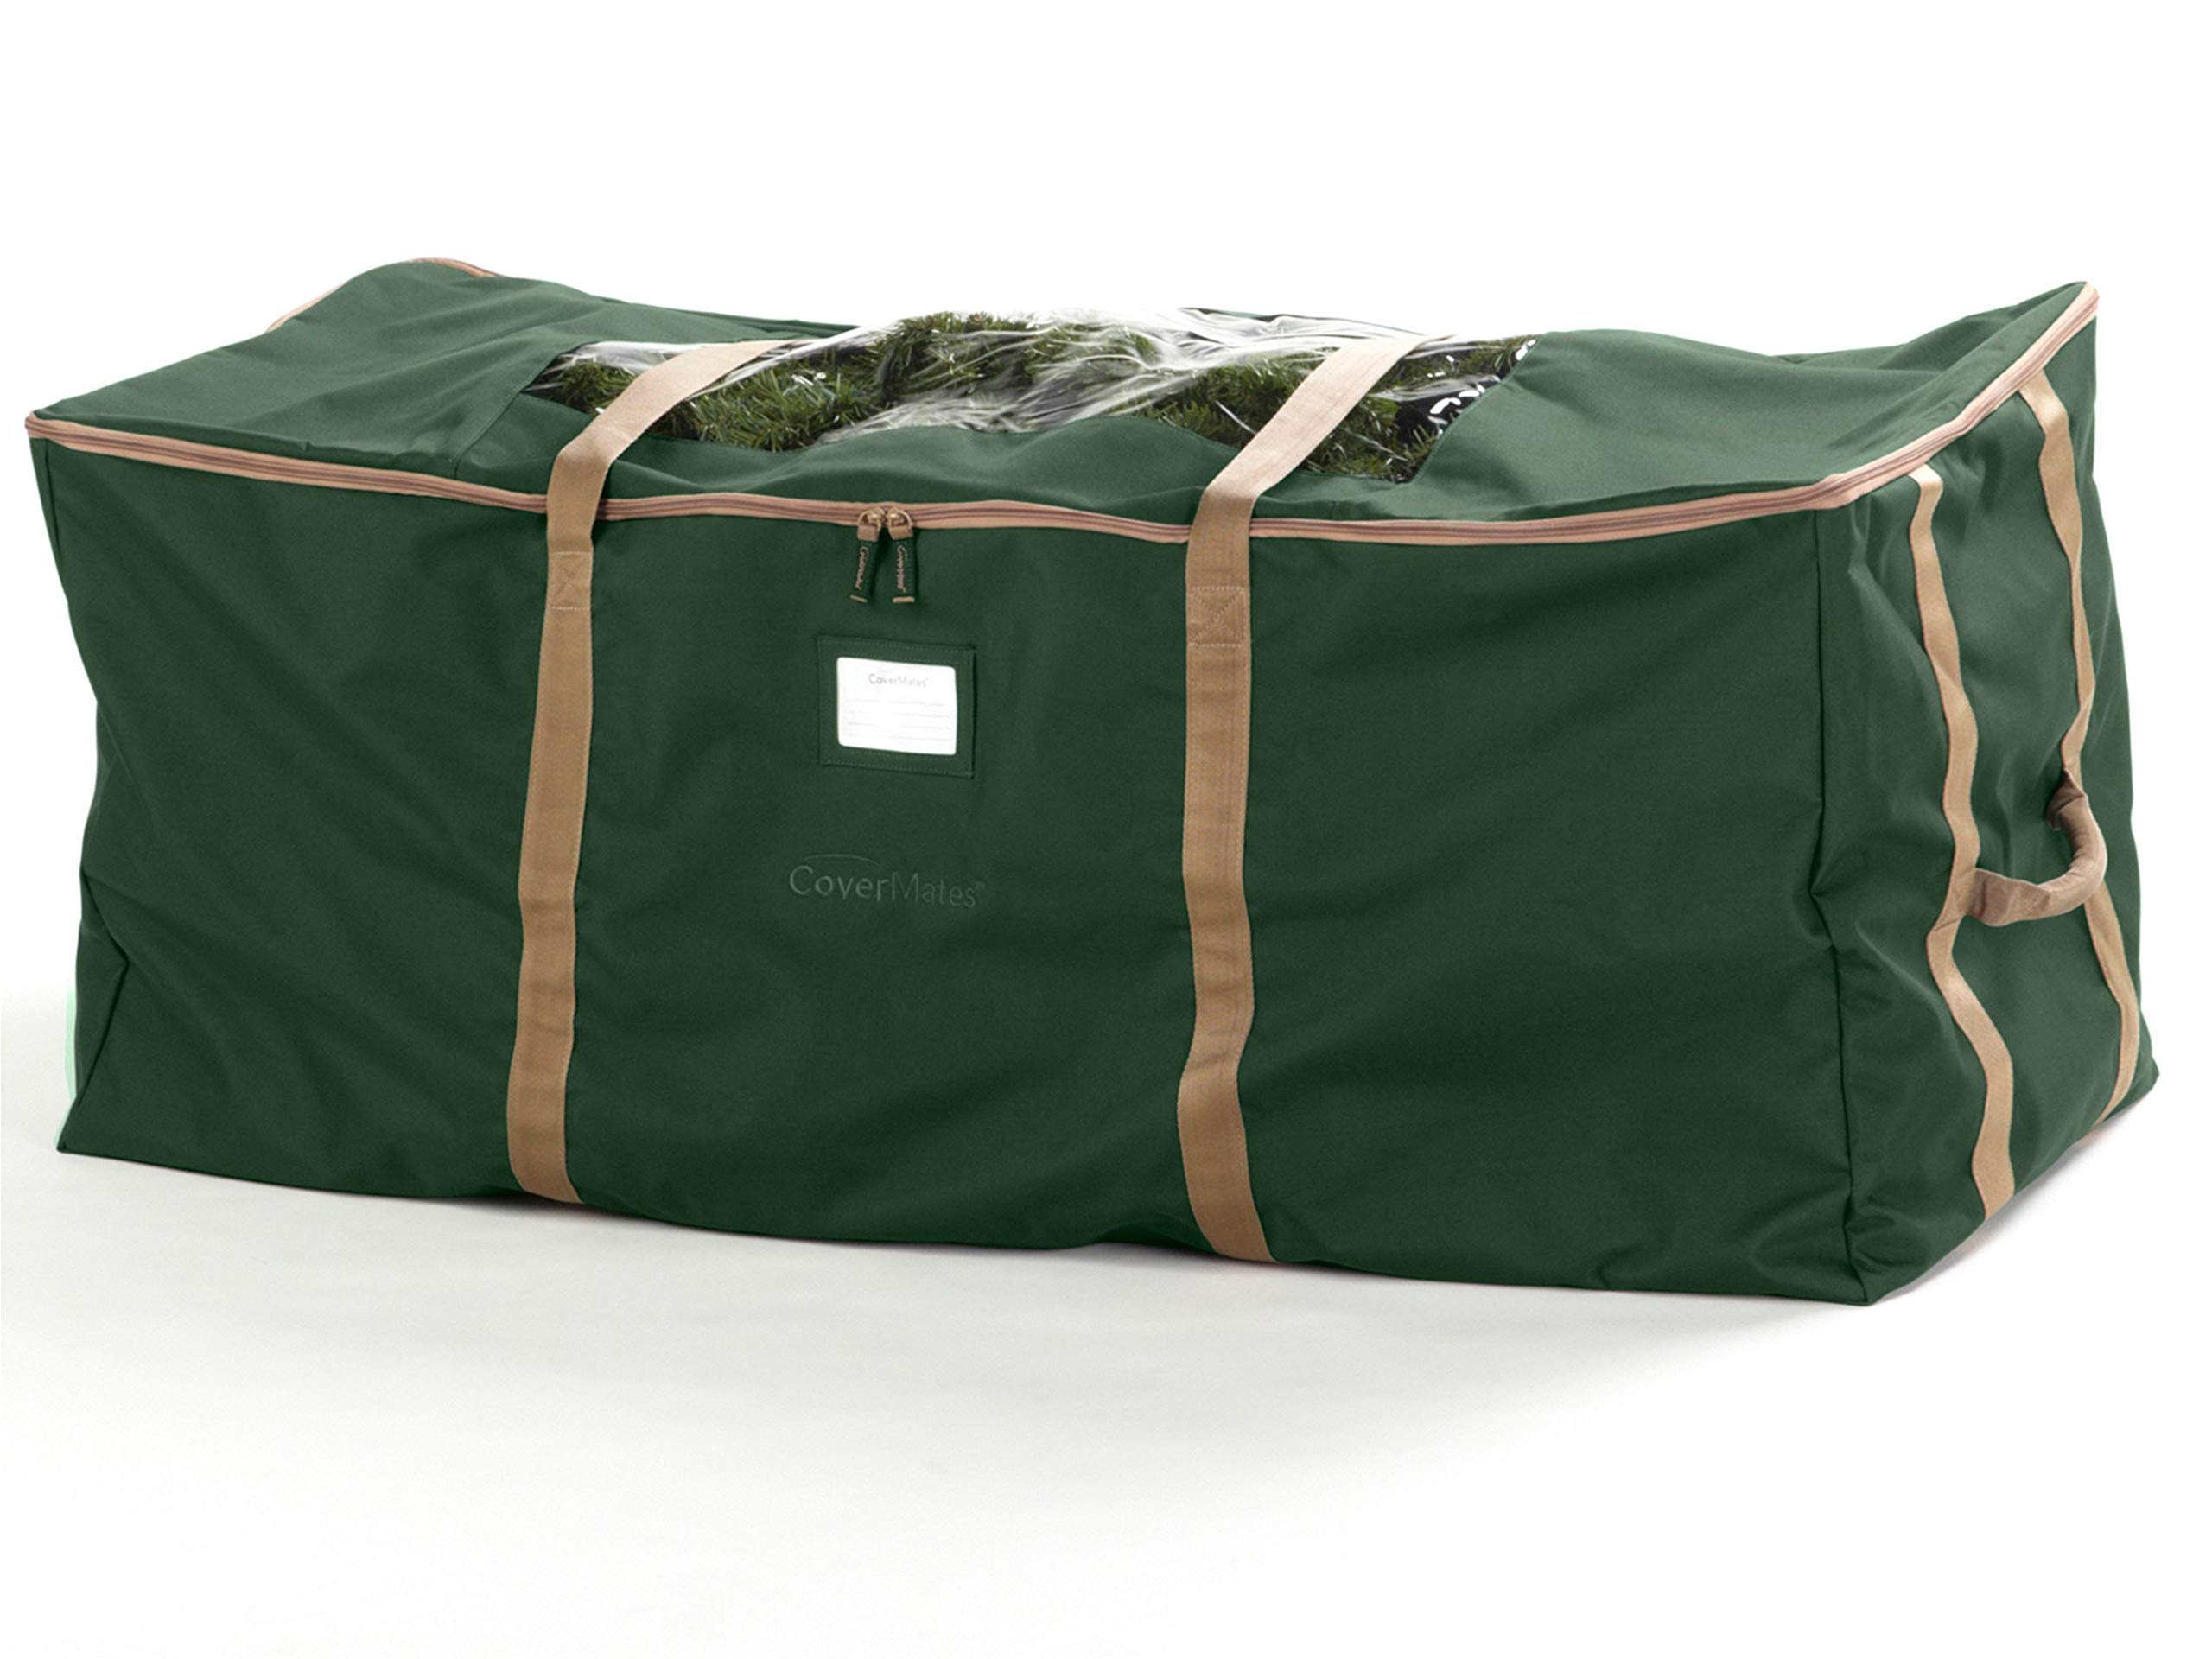 Covermates – Holiday Tree Storage Bag – Fits 9 to 11 Foot Tree – 3 Year Warranty- Green